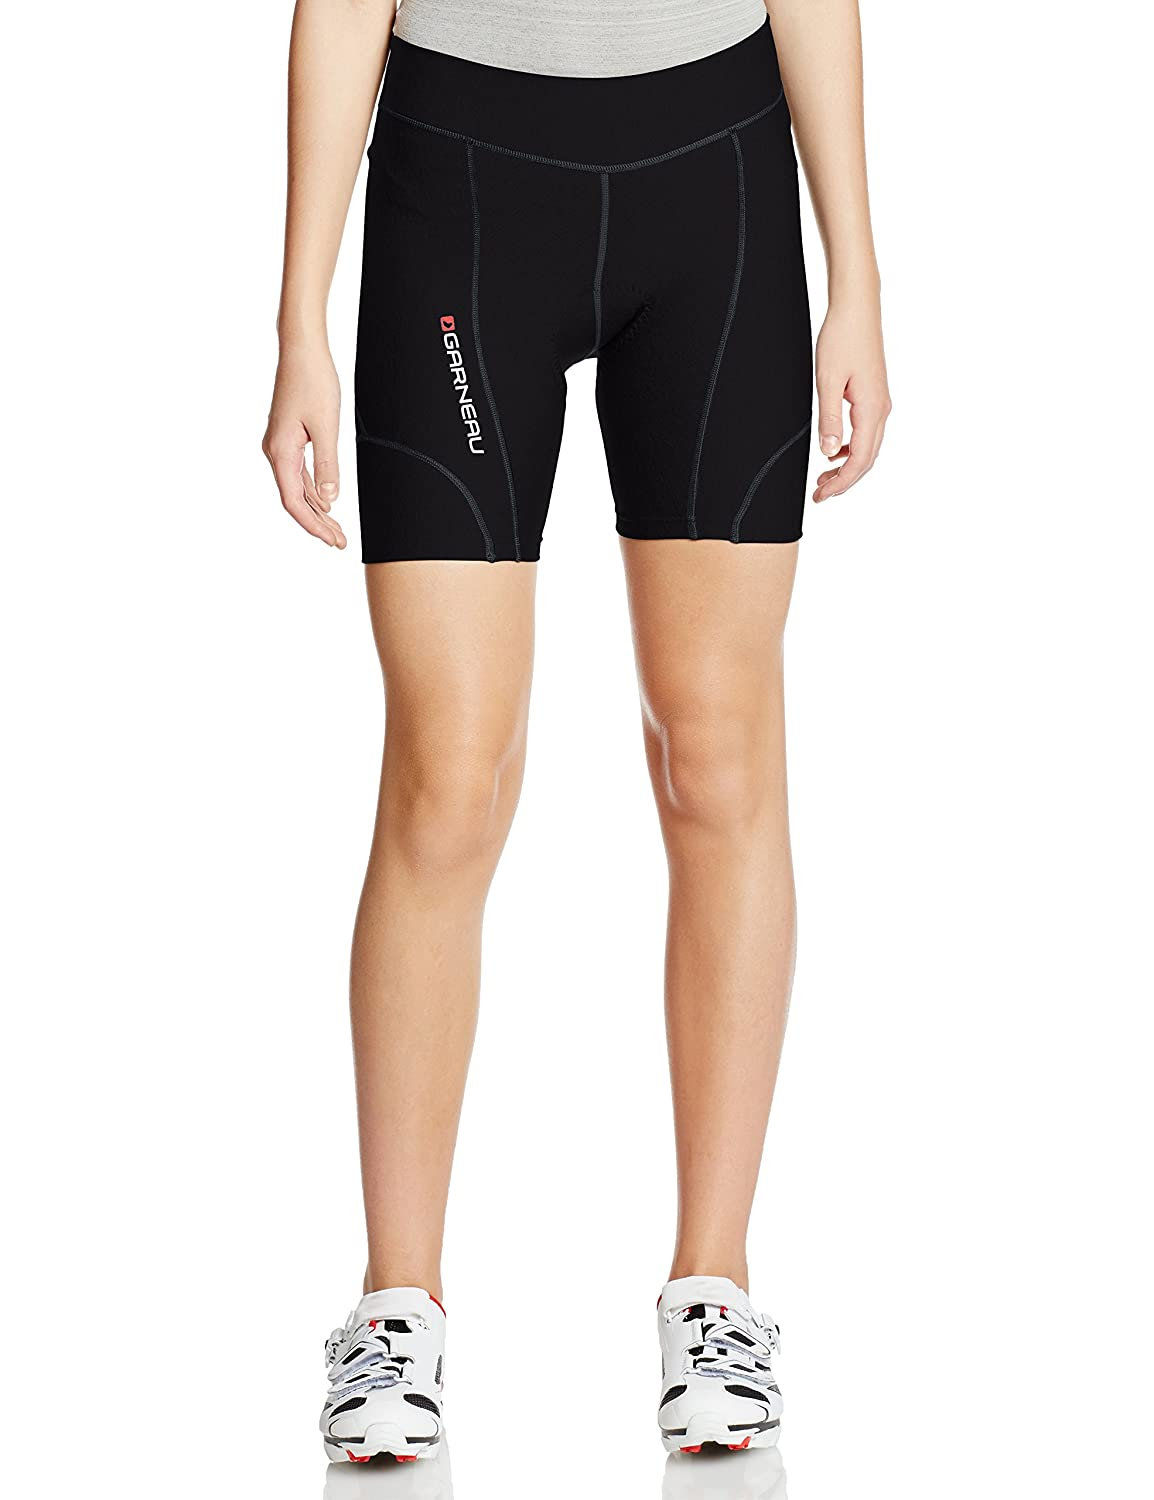 Amazon.com : Louis Garneau Women's Fit Sensor 7.5 Bike Shorts : Sports &  Outdoors